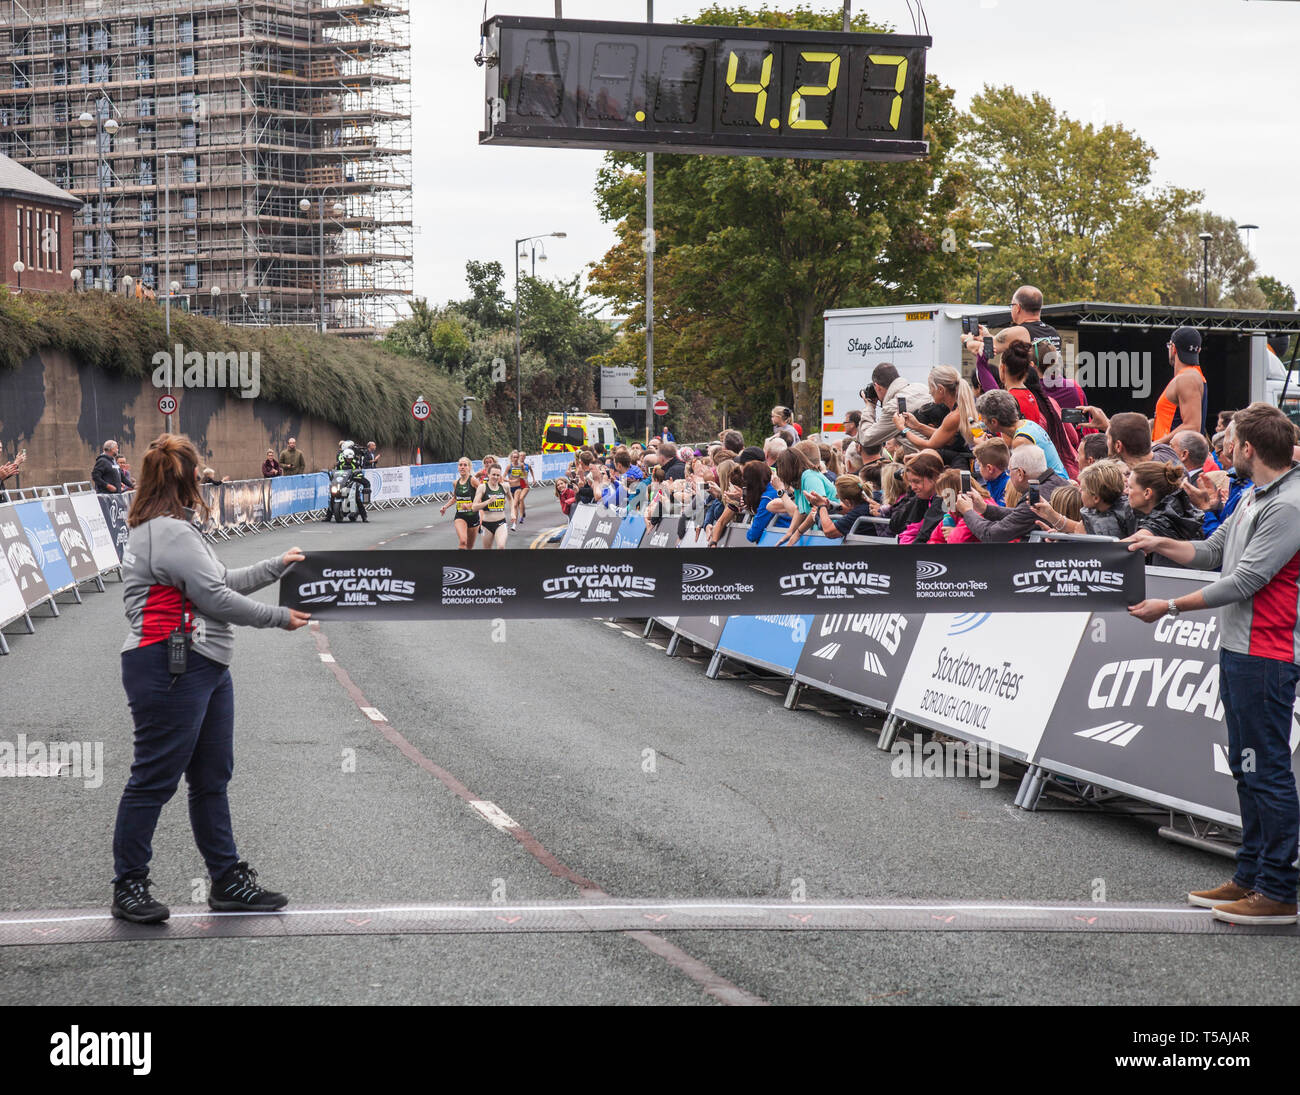 Two officials hold the tape for the Woman's  Elite Mile athletes appoaching along the Riverside Road,Stockton on Tees,England,UK Stock Photo